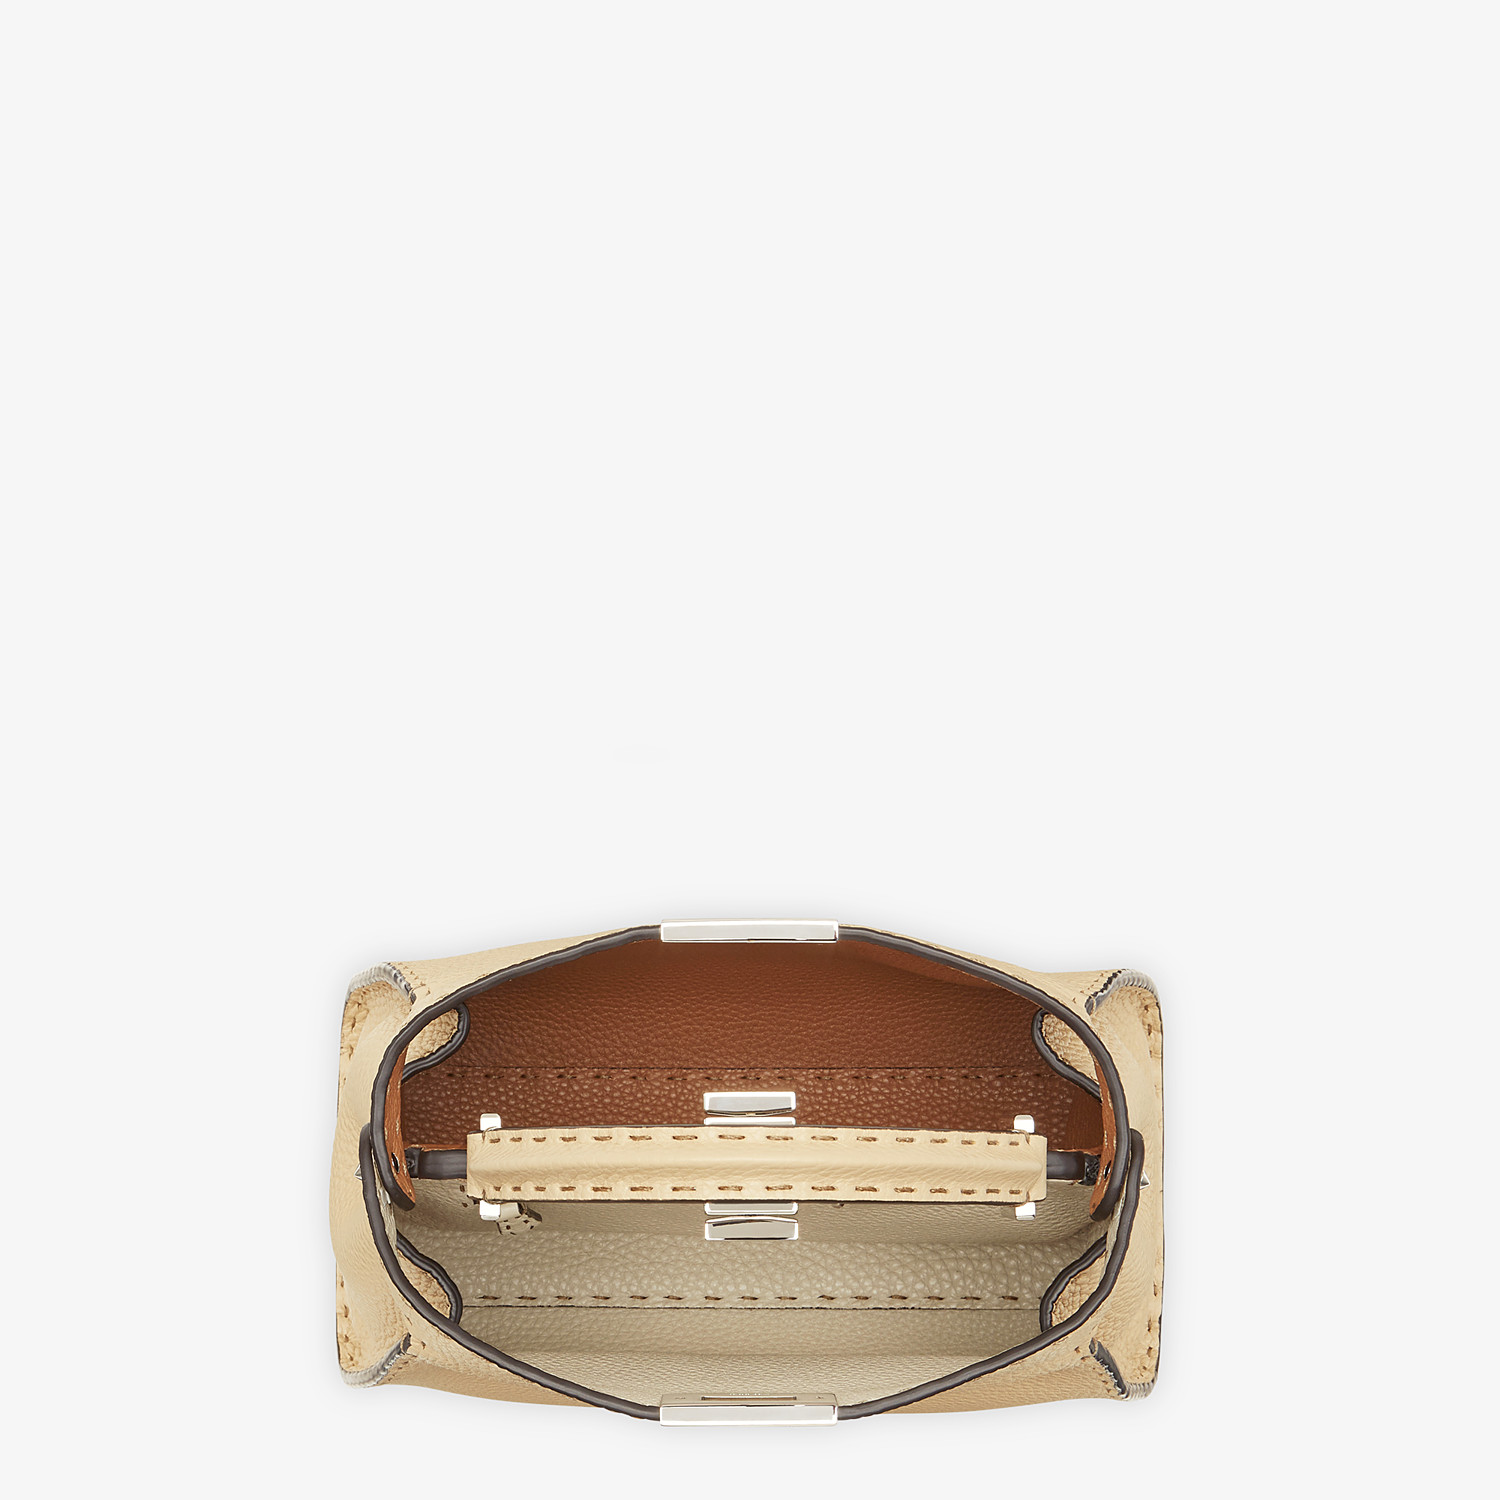 FENDI PEEKABOO ICONIC ESSENTIALLY - Beige Cuoio Romano leather bag - view 5 detail